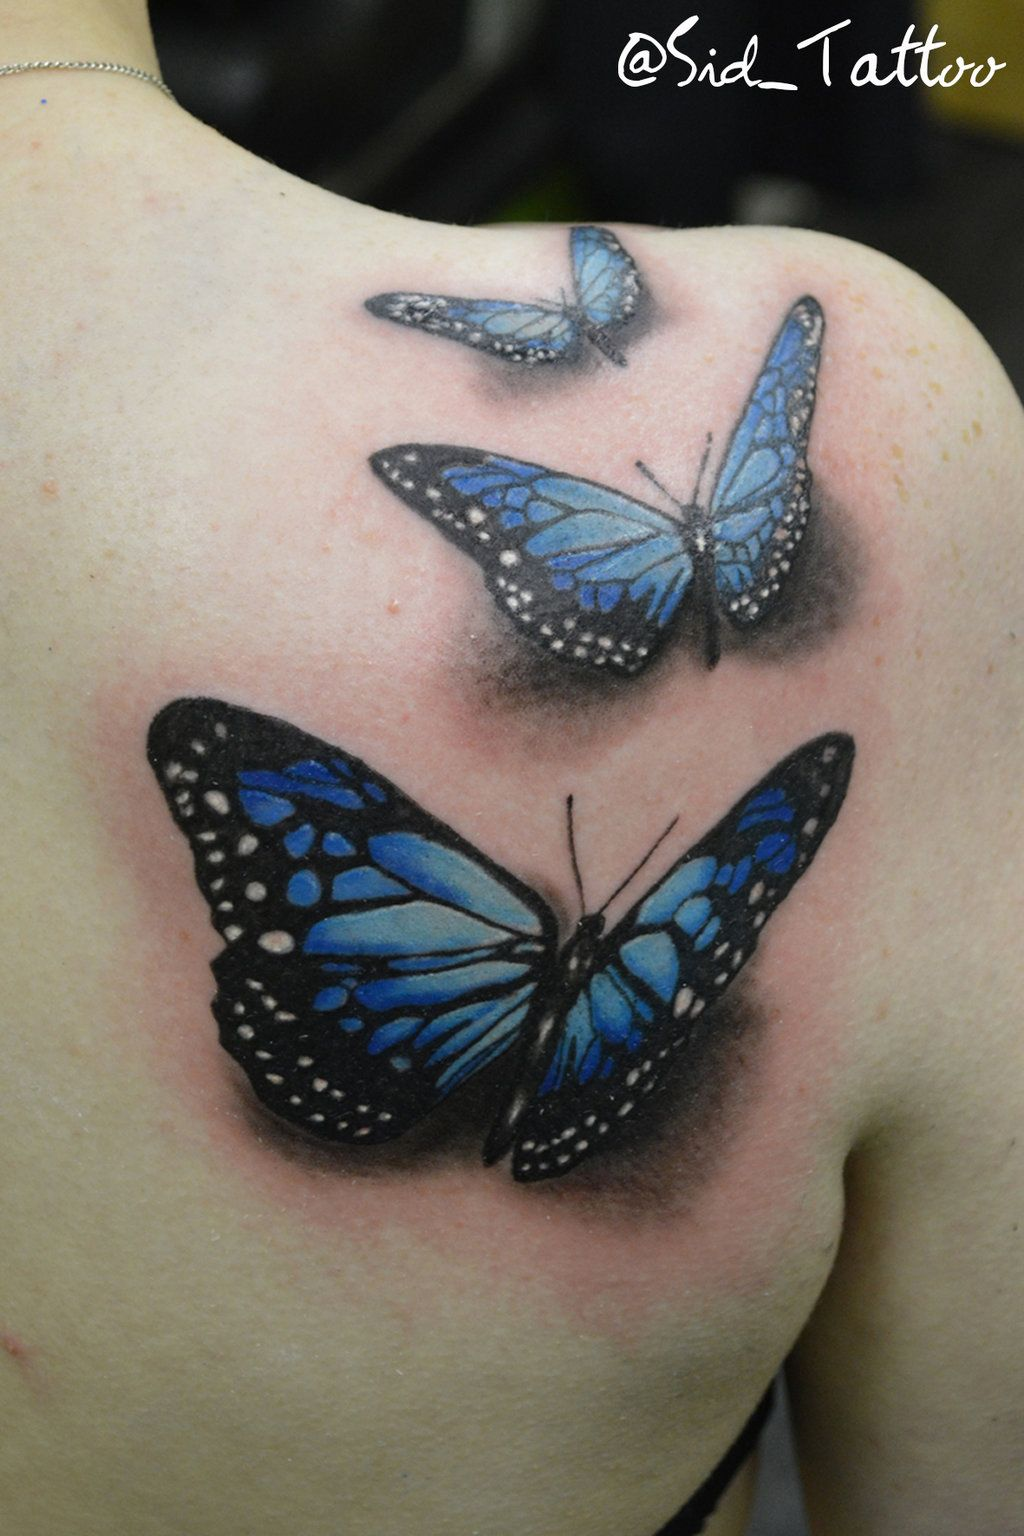 I want to get a three butterfly tattoo, one butterfly for